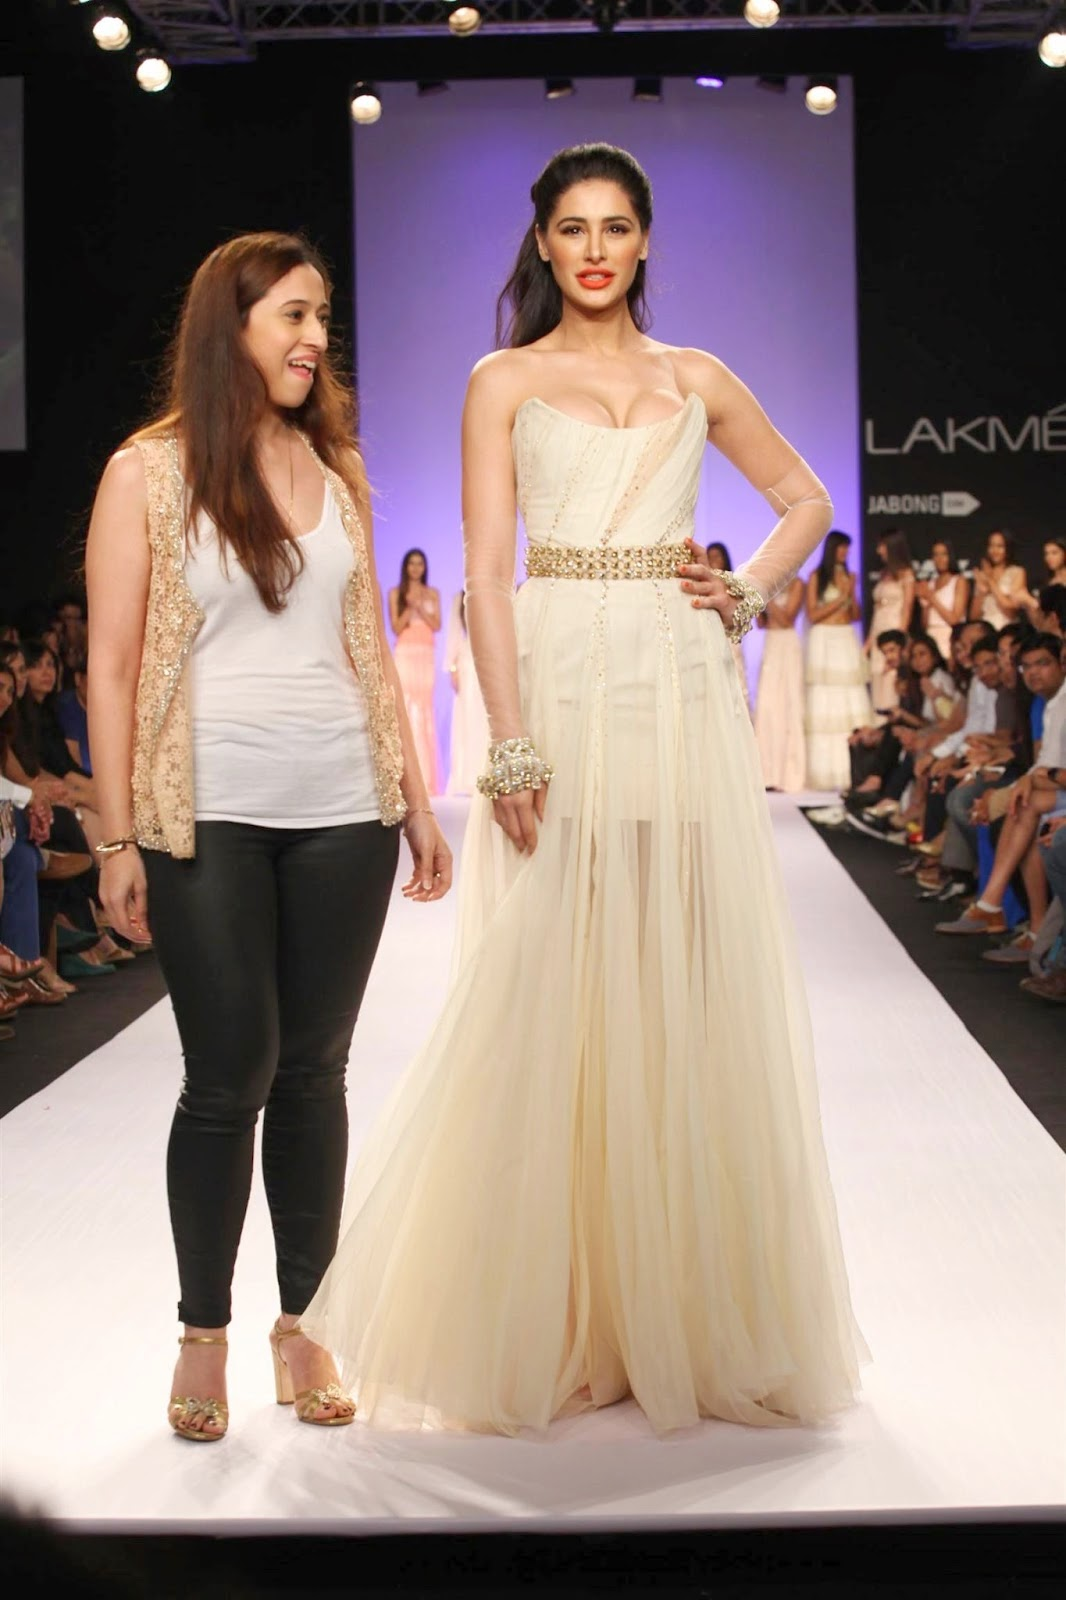 Lakme Fashion Week 2018:Top Oops Moments from LFW! Boldsky 71